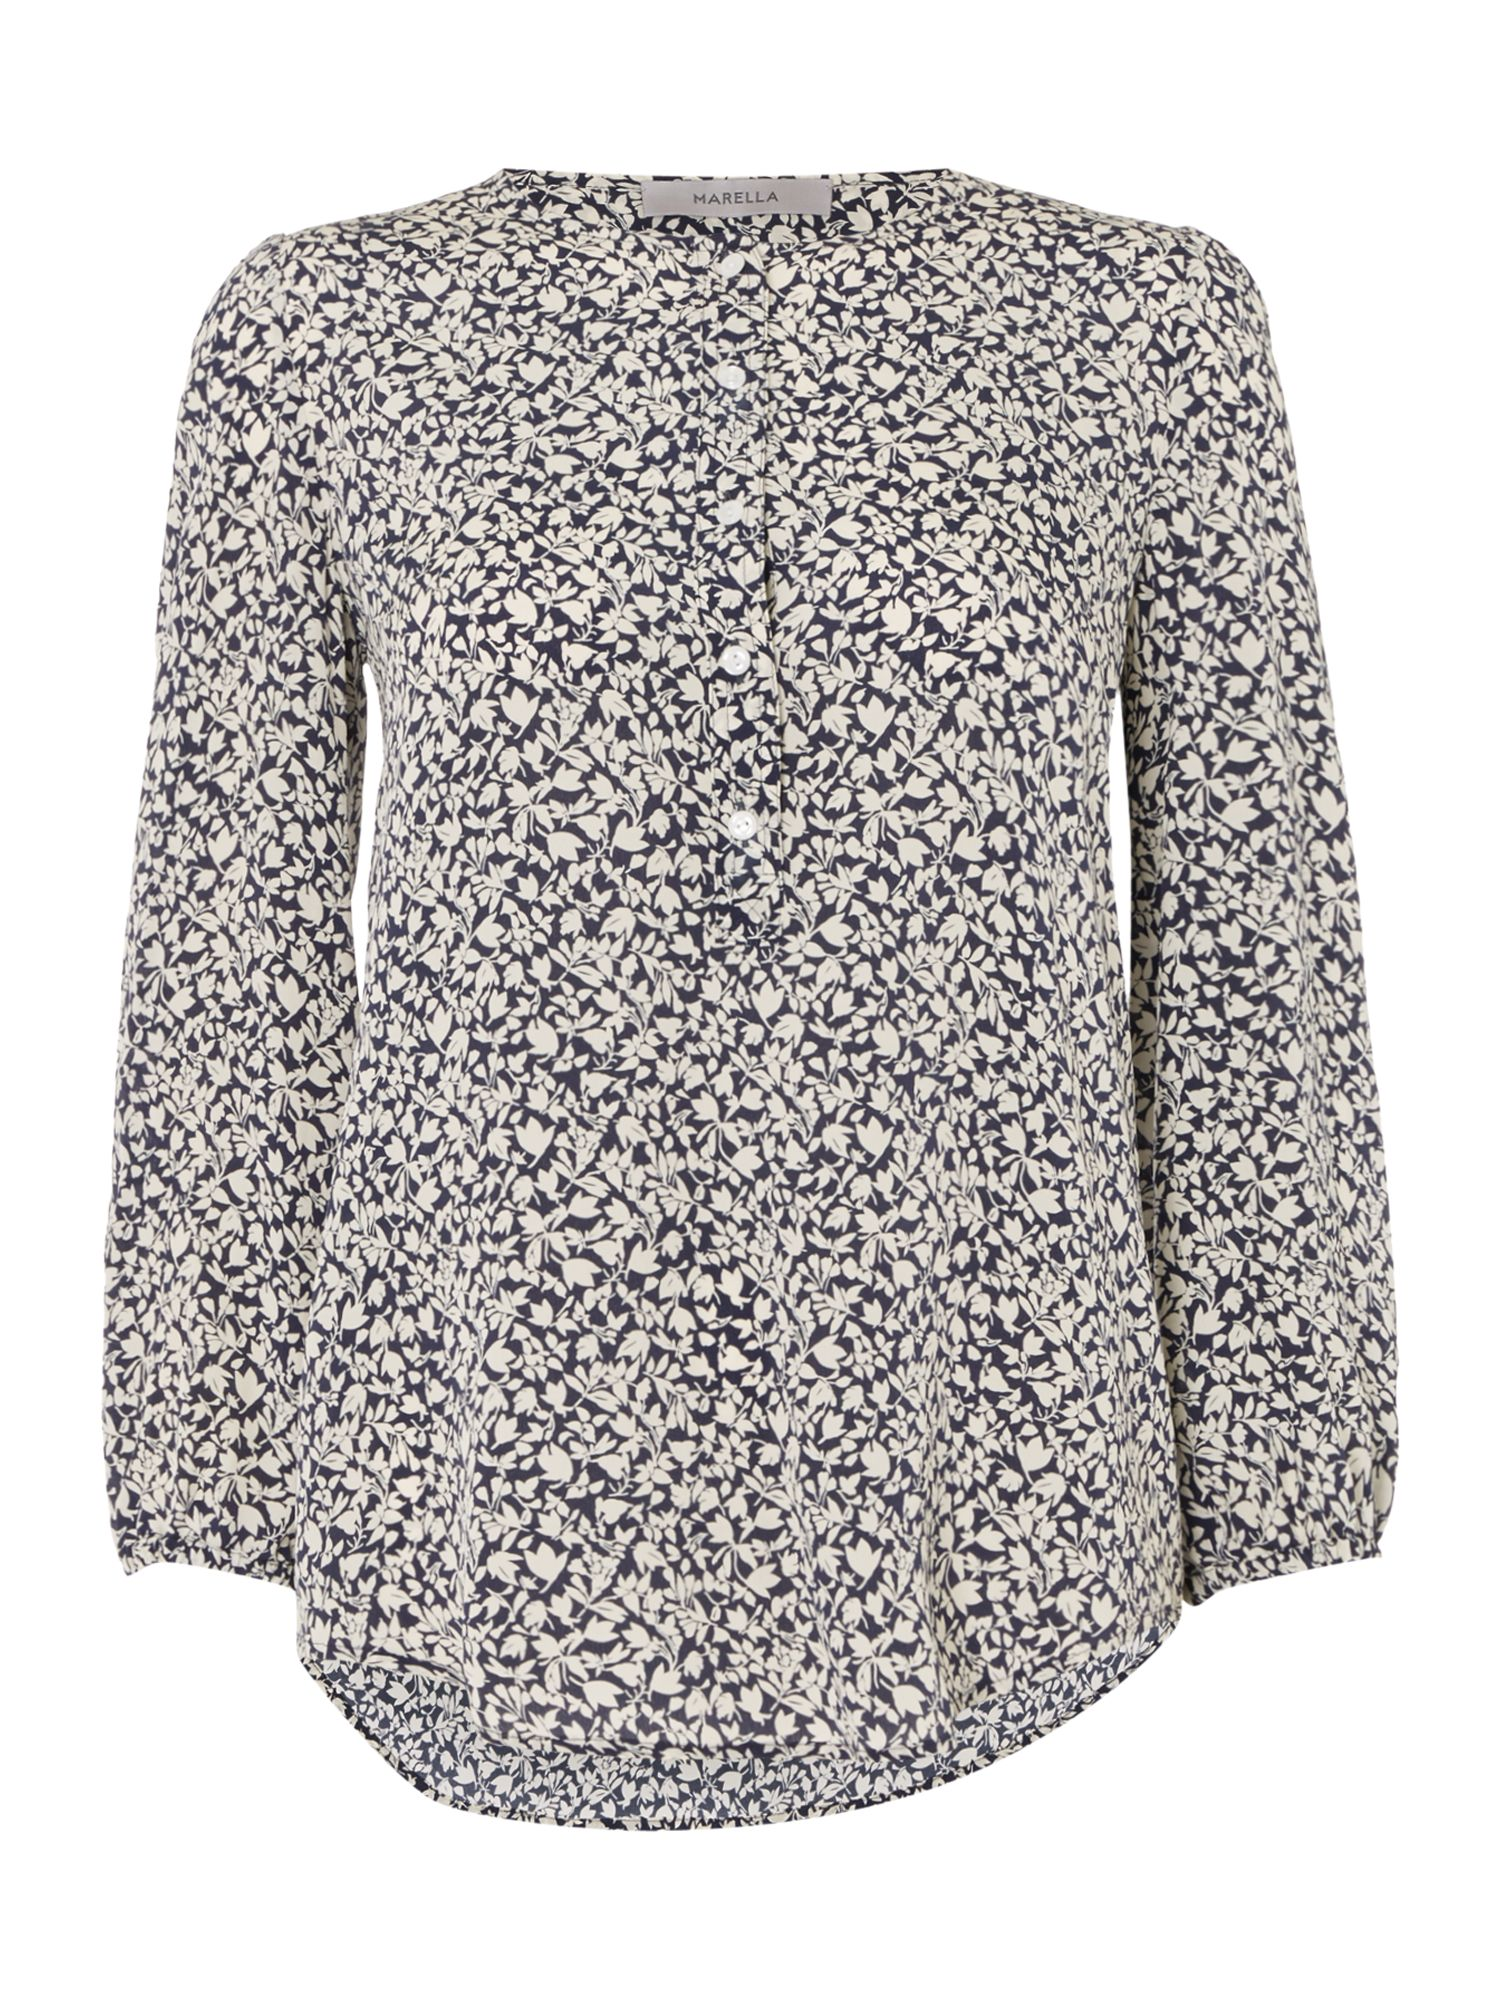 Marella Bice printed button blouse, Blue